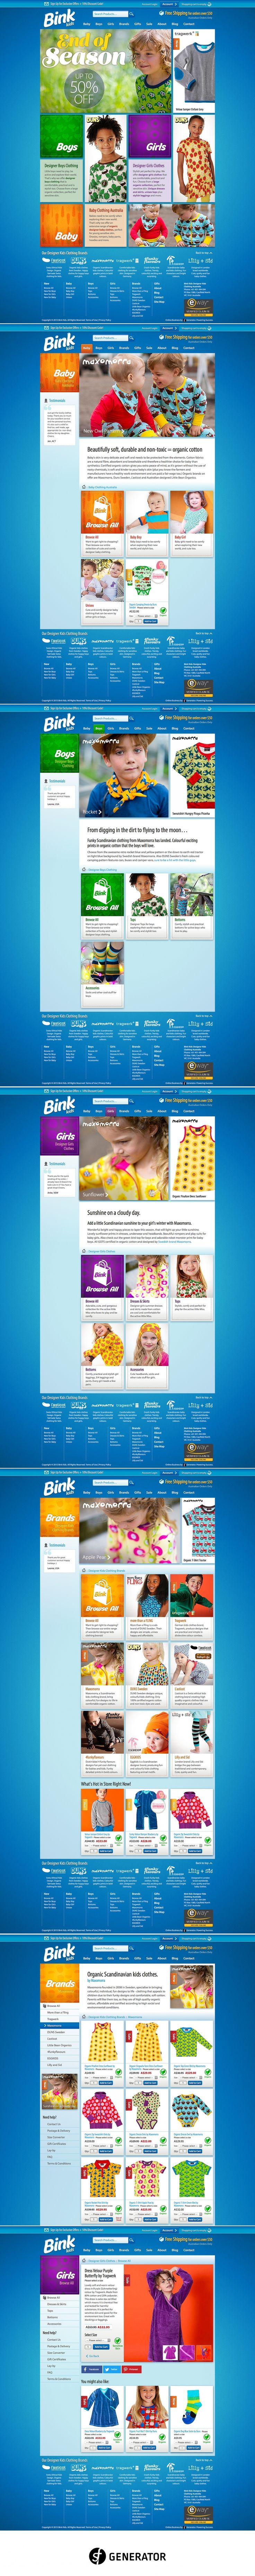 Web design and development of the Bink Kids website and online store using the Adobe Business Catalyst Content Management System (CMS). Bink Kids offers a large range of bright, colourful organic cotton clothing from brands across Scandinavia, Europe and beyond. Their mission is to provide fun, age appropriate and quality clothing for boys, girls and baby. SF Generator produced a website that met this challenge by providing a magazine style layout for the website and store. It puts this…